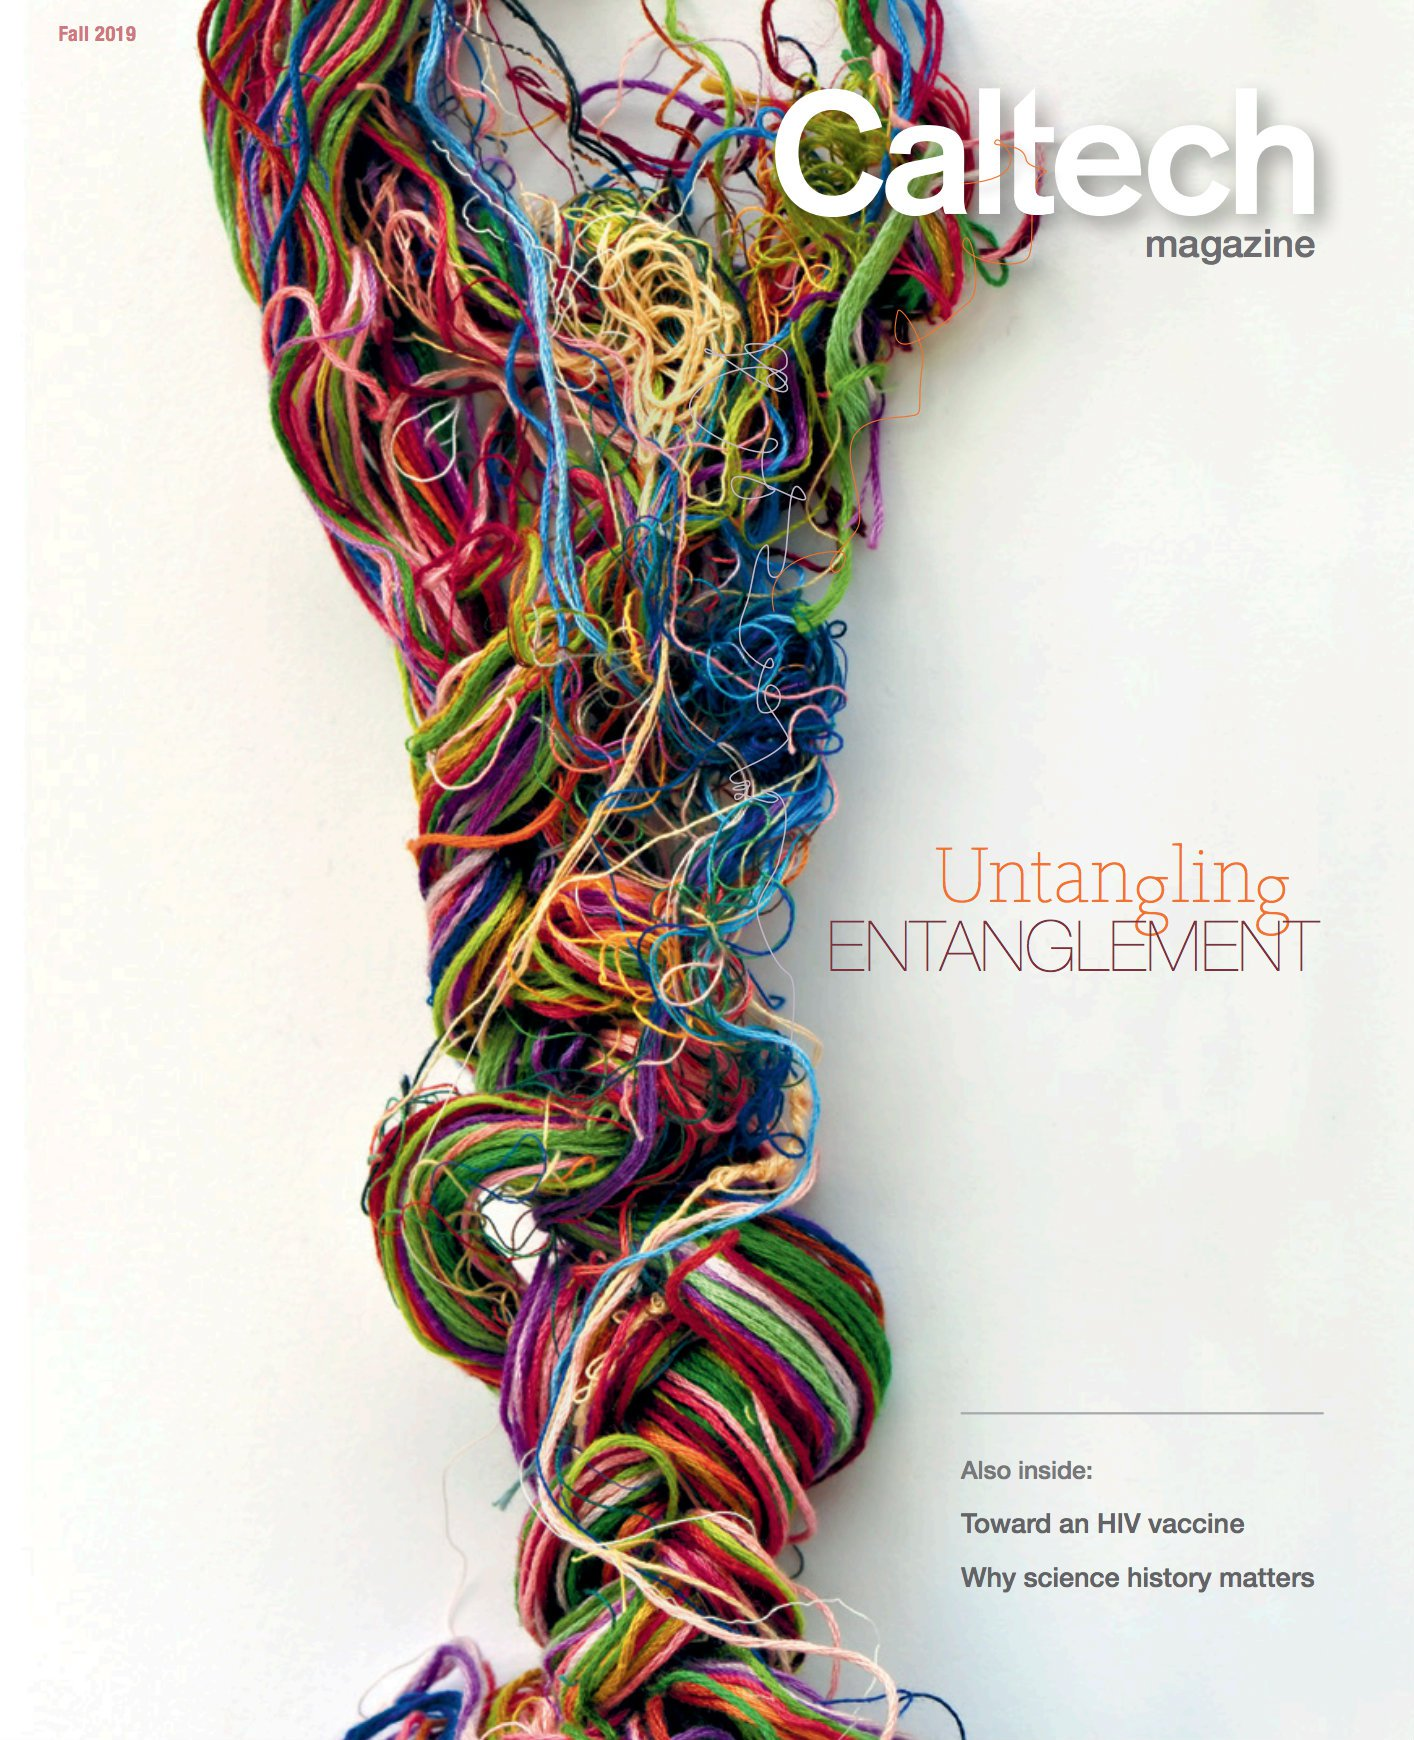 cover of the Fall 2019 issue of Caltech magazine